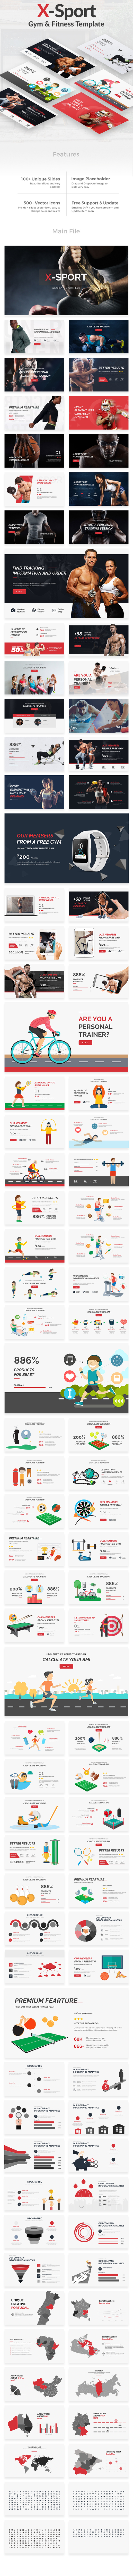 XSport Gym and Fitness Google Slide Template - Google Slides Presentation Templates